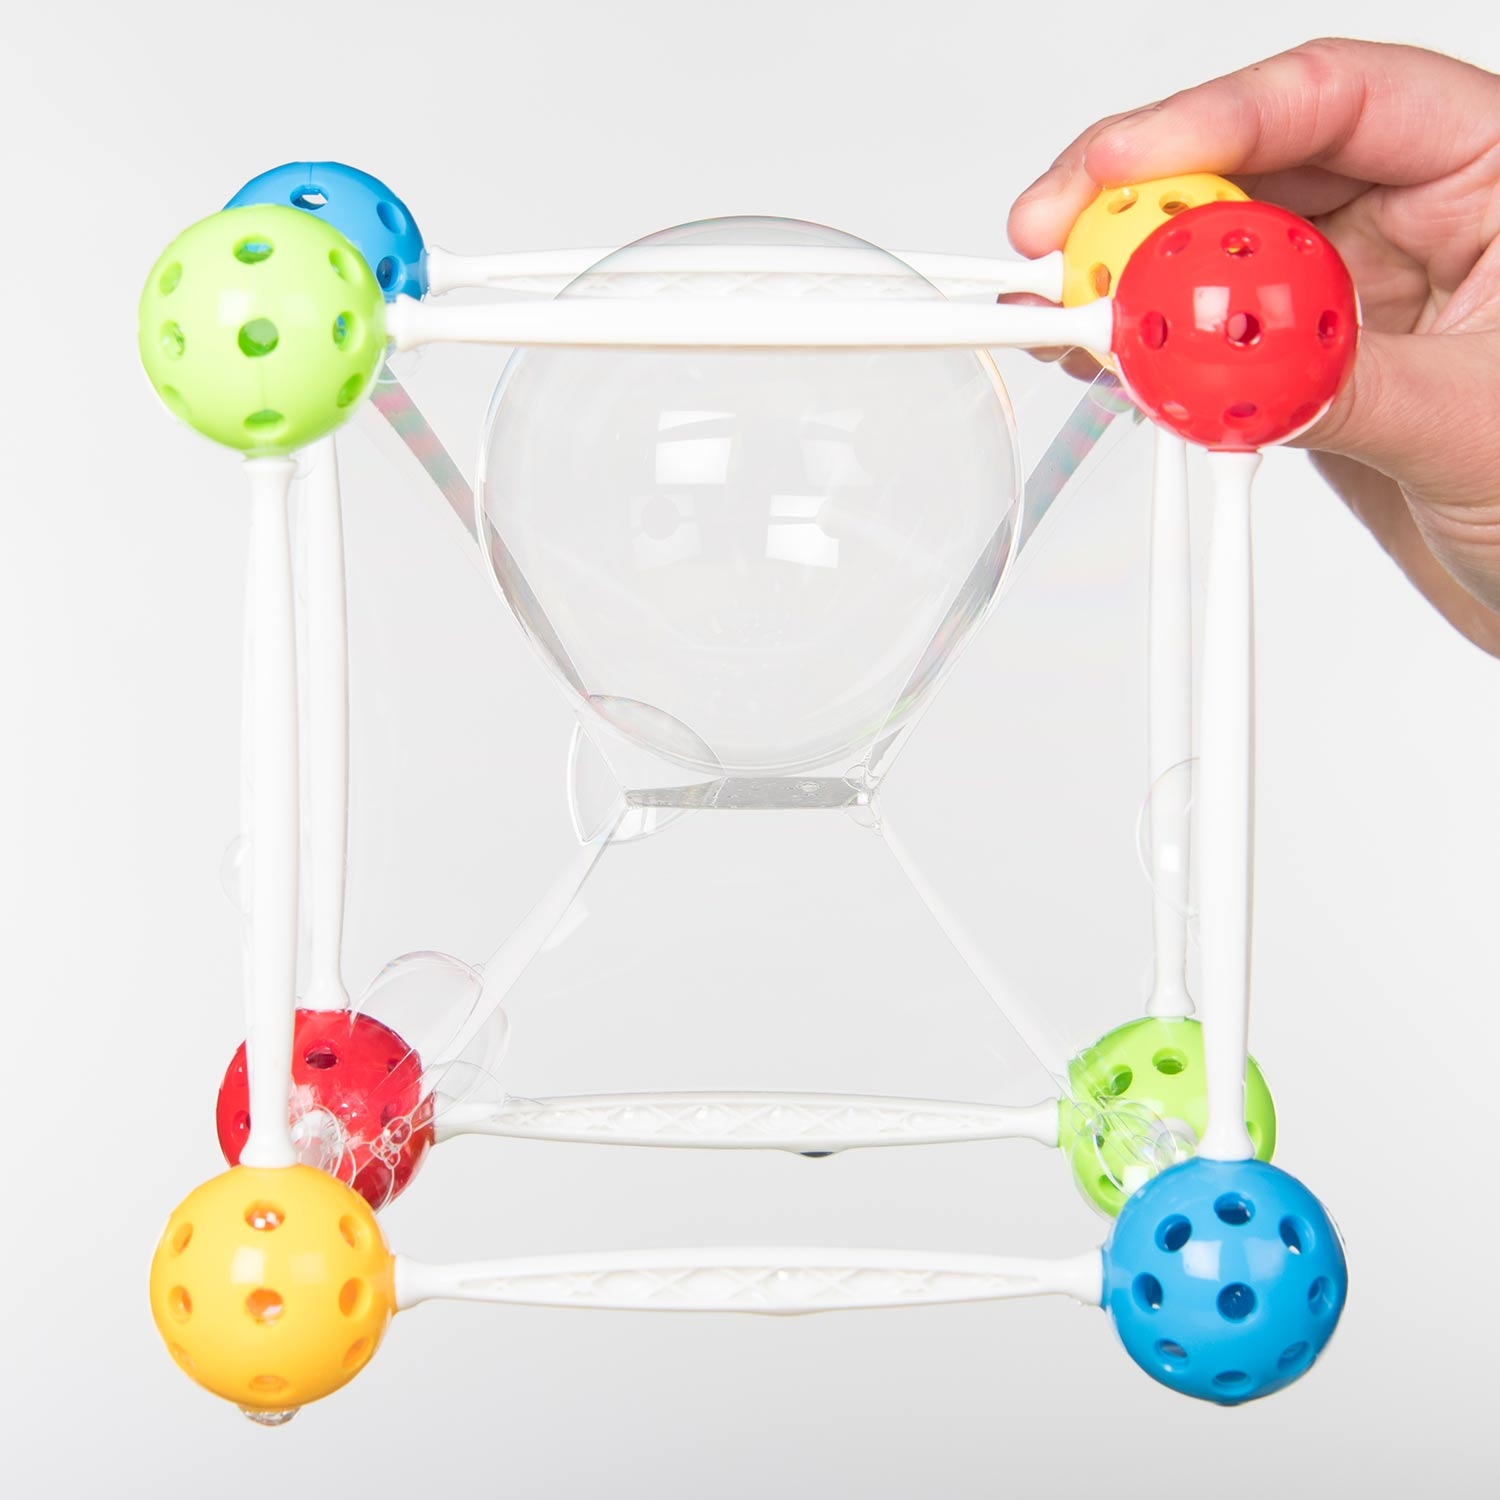 Bubbles STEM Kit